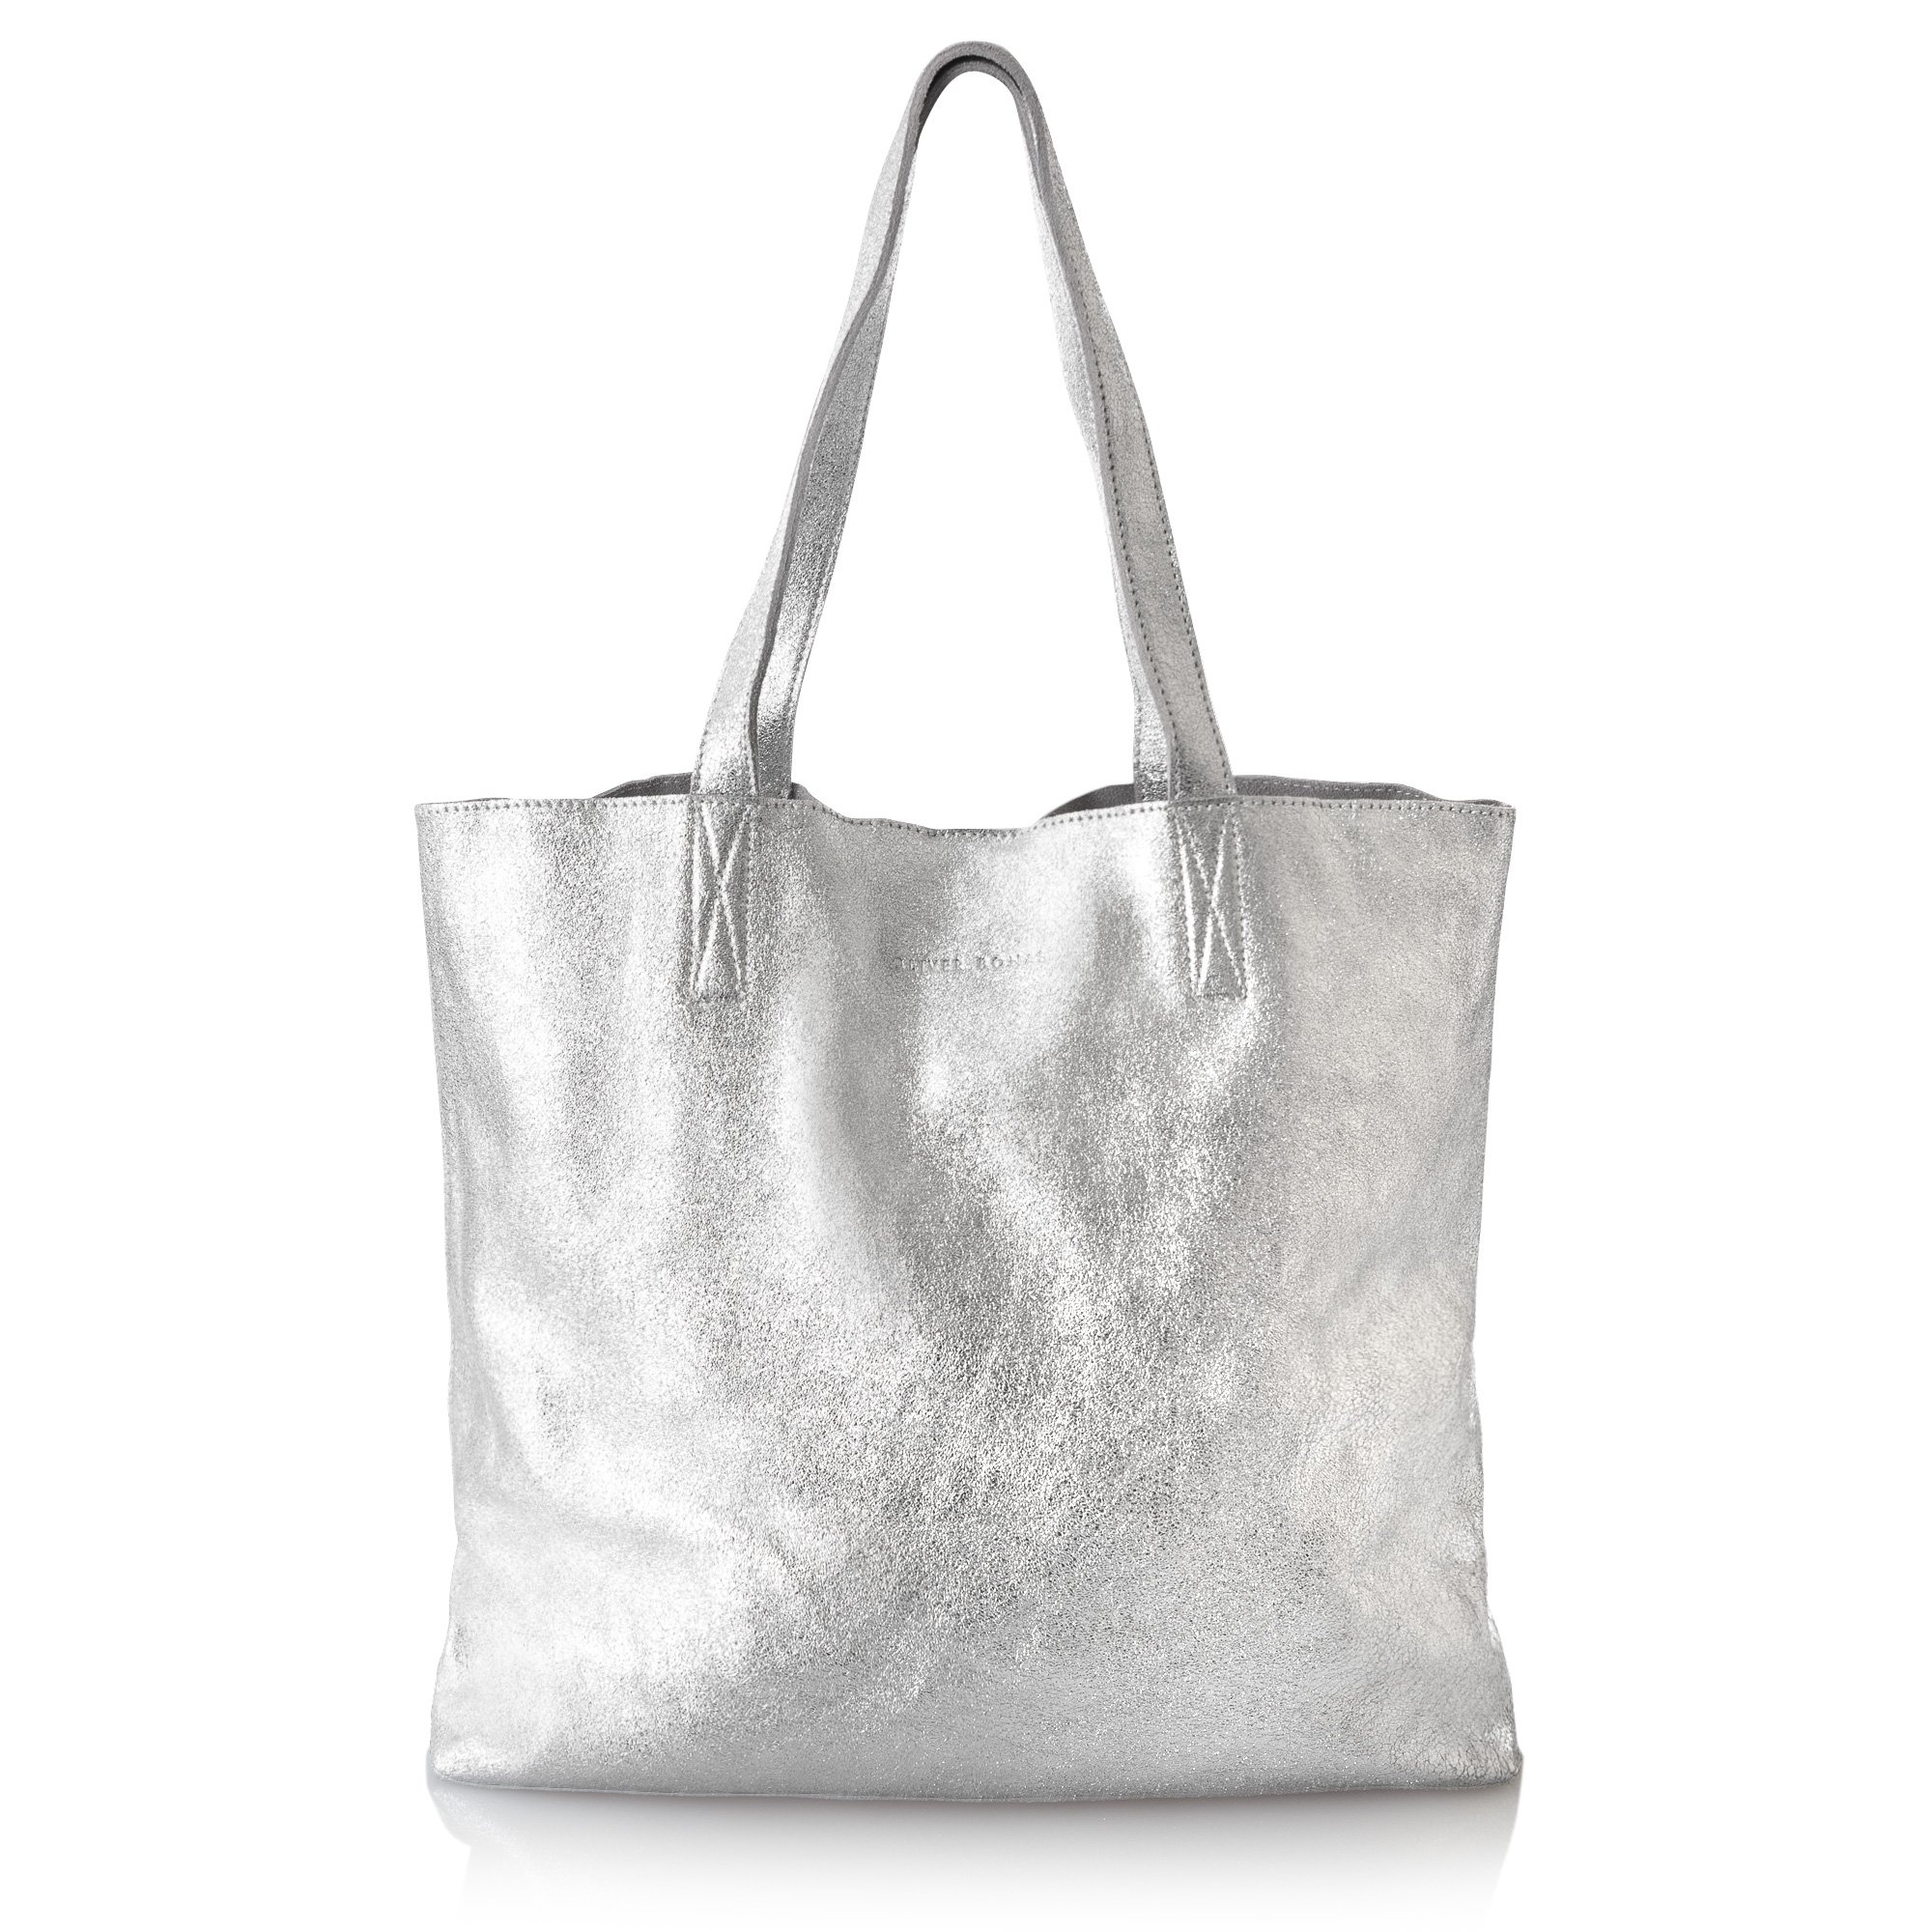 Silver leather tote bag uk - Silver Leather Tote Bag Uk 0